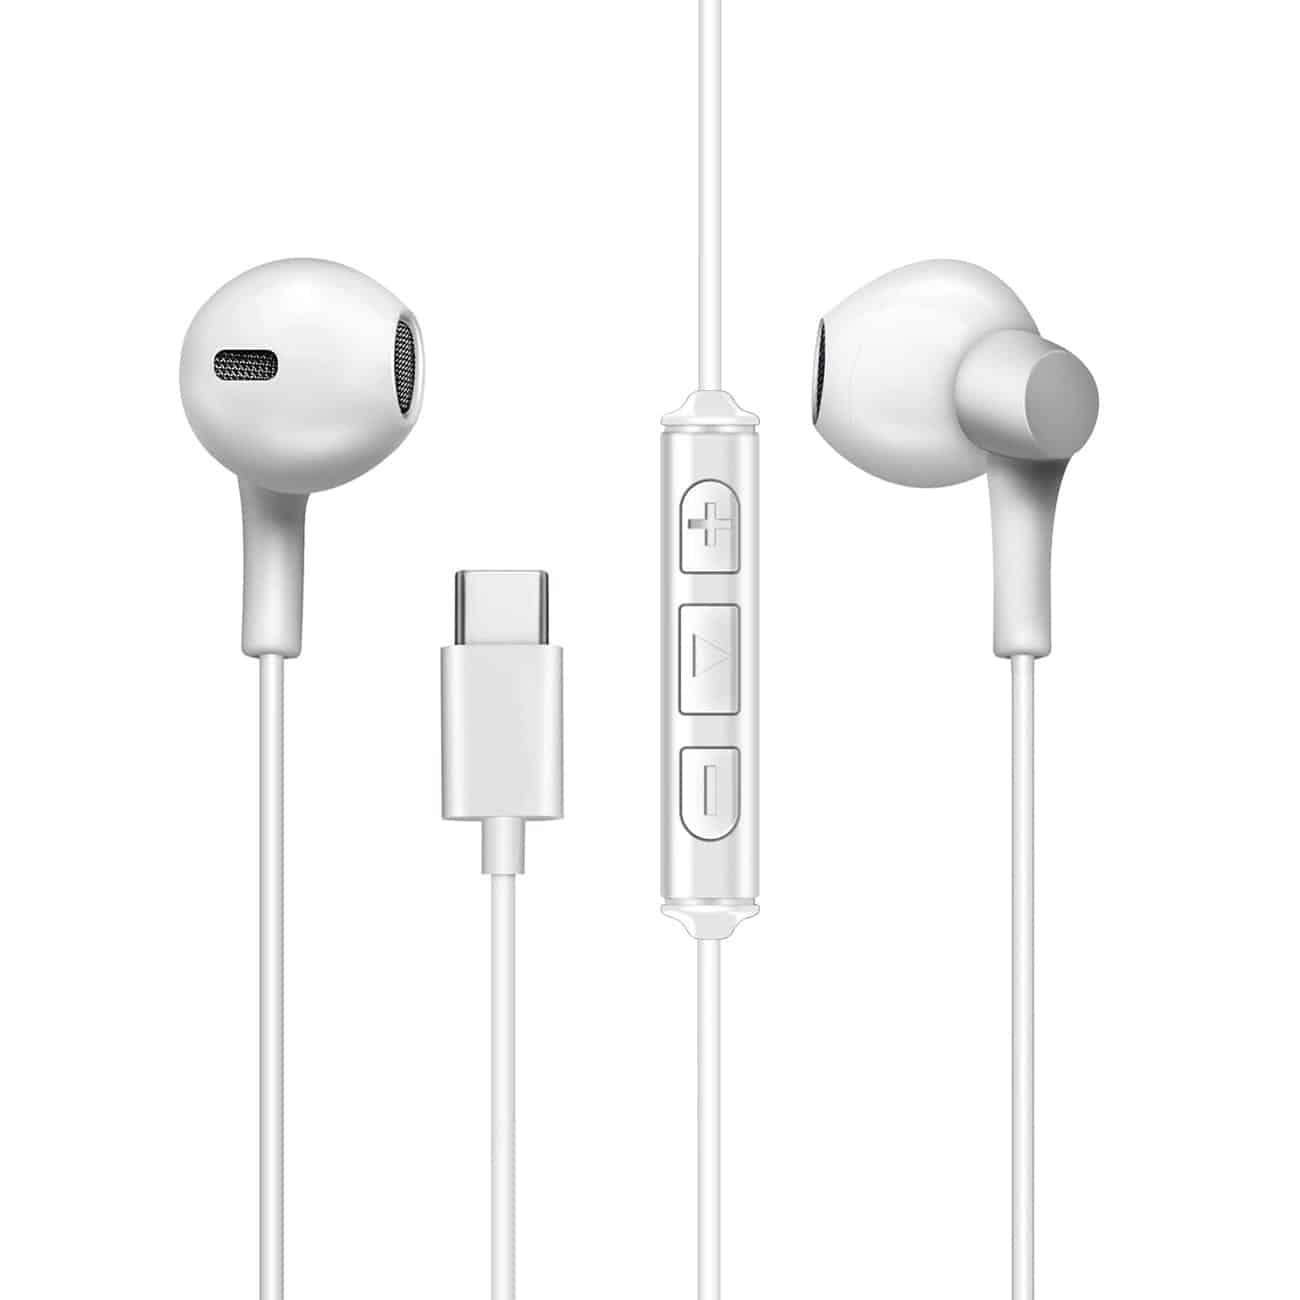 Moisture MT-H212 Earphones For Type C In White